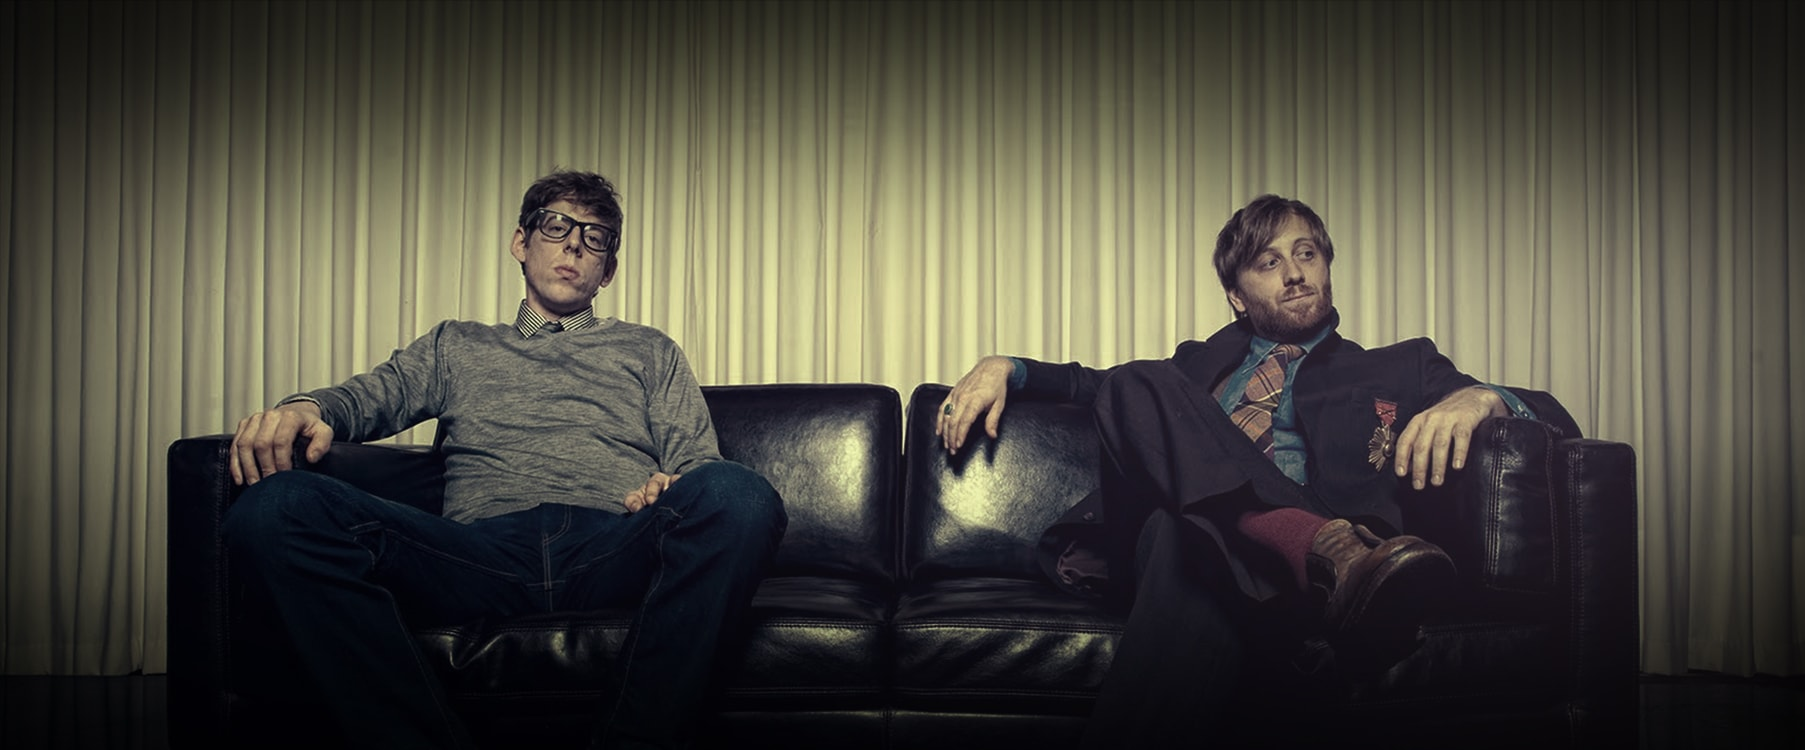 The Black Keys on Creating Hits with UAD Plug-Ins